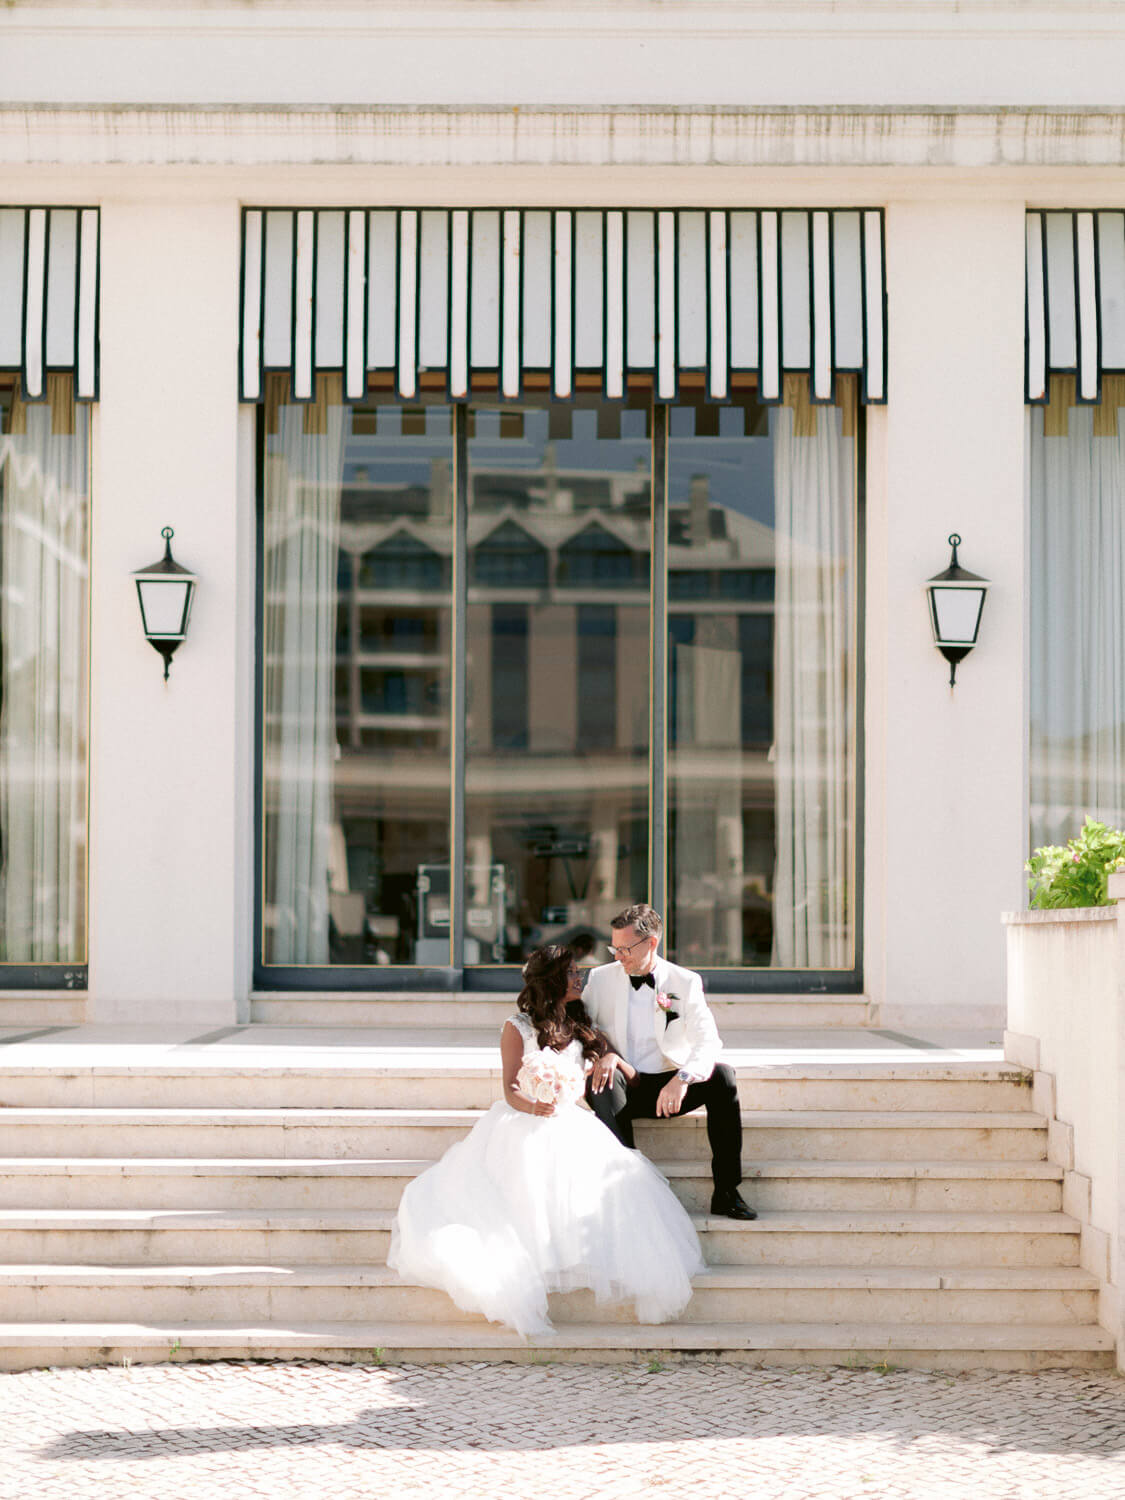 romantic newlyweds after the wedding ceremony at Hotel Palacio Estoril by Portugal Wedding Photographer